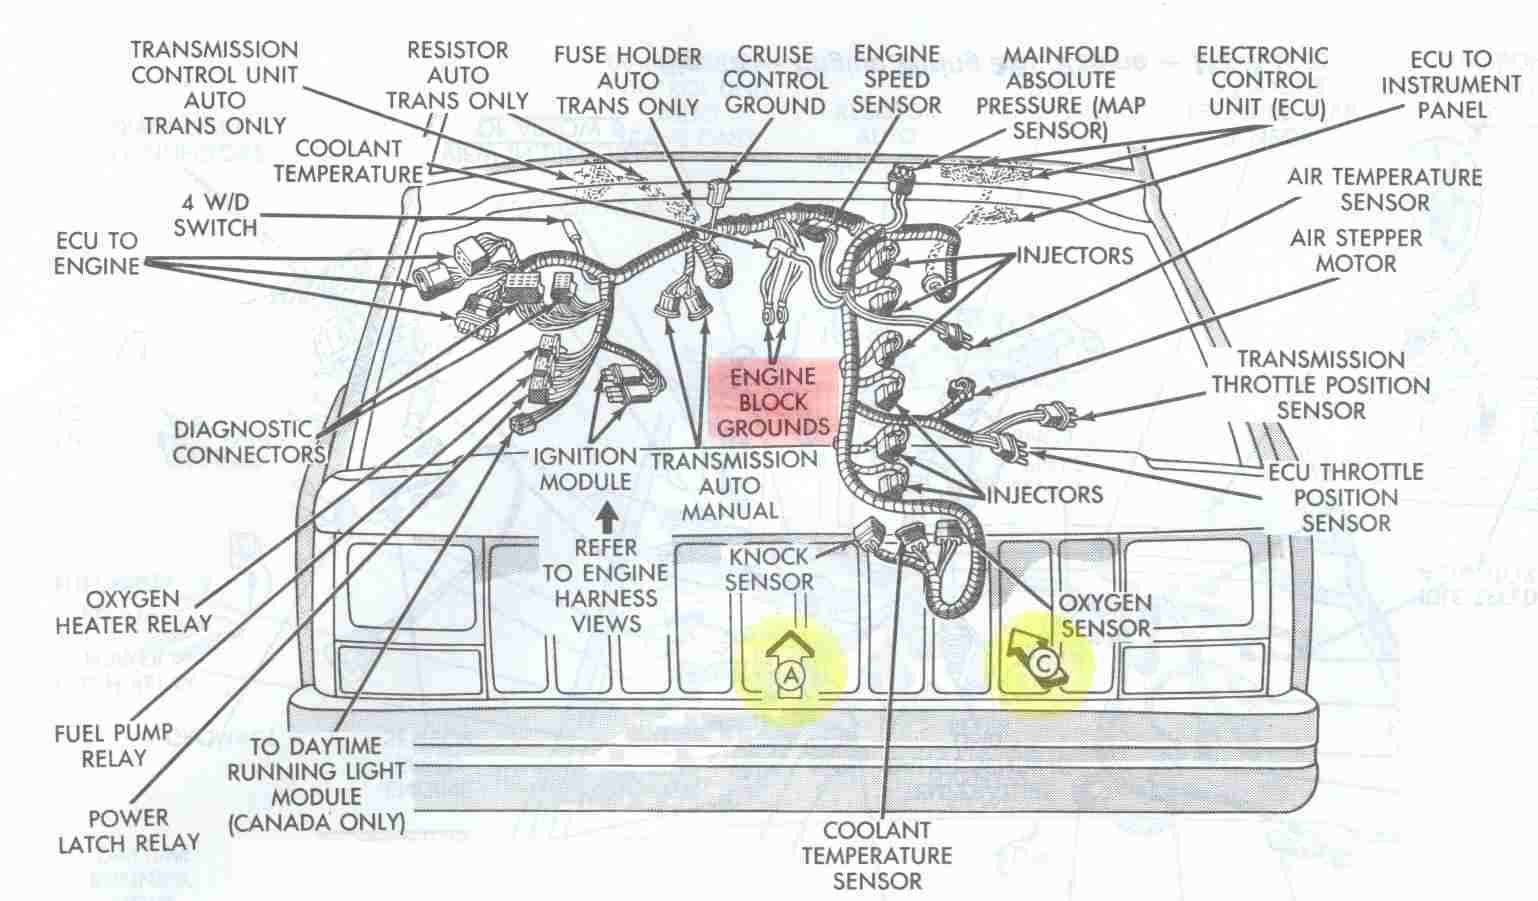 medium resolution of jeep 4 0 wiring harness wiring diagram third level rh 17 9 15 jacobwinterstein com 2004 jeep wrangler engine compartment diagram 1989 jeep wrangler engine